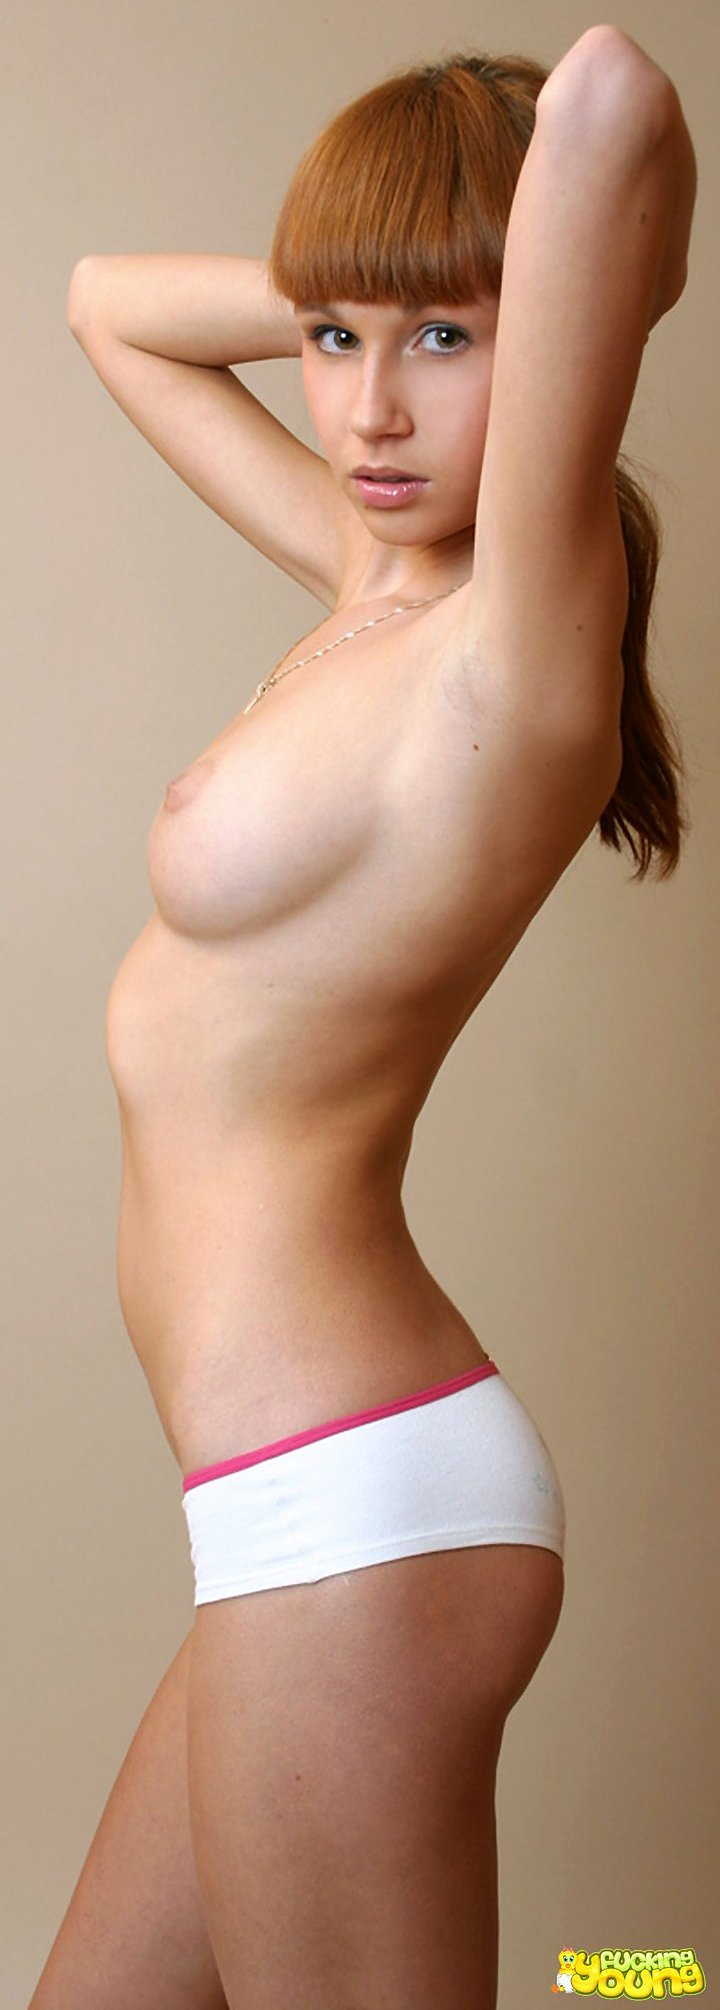 Alluring young redhead shows her hot naked body